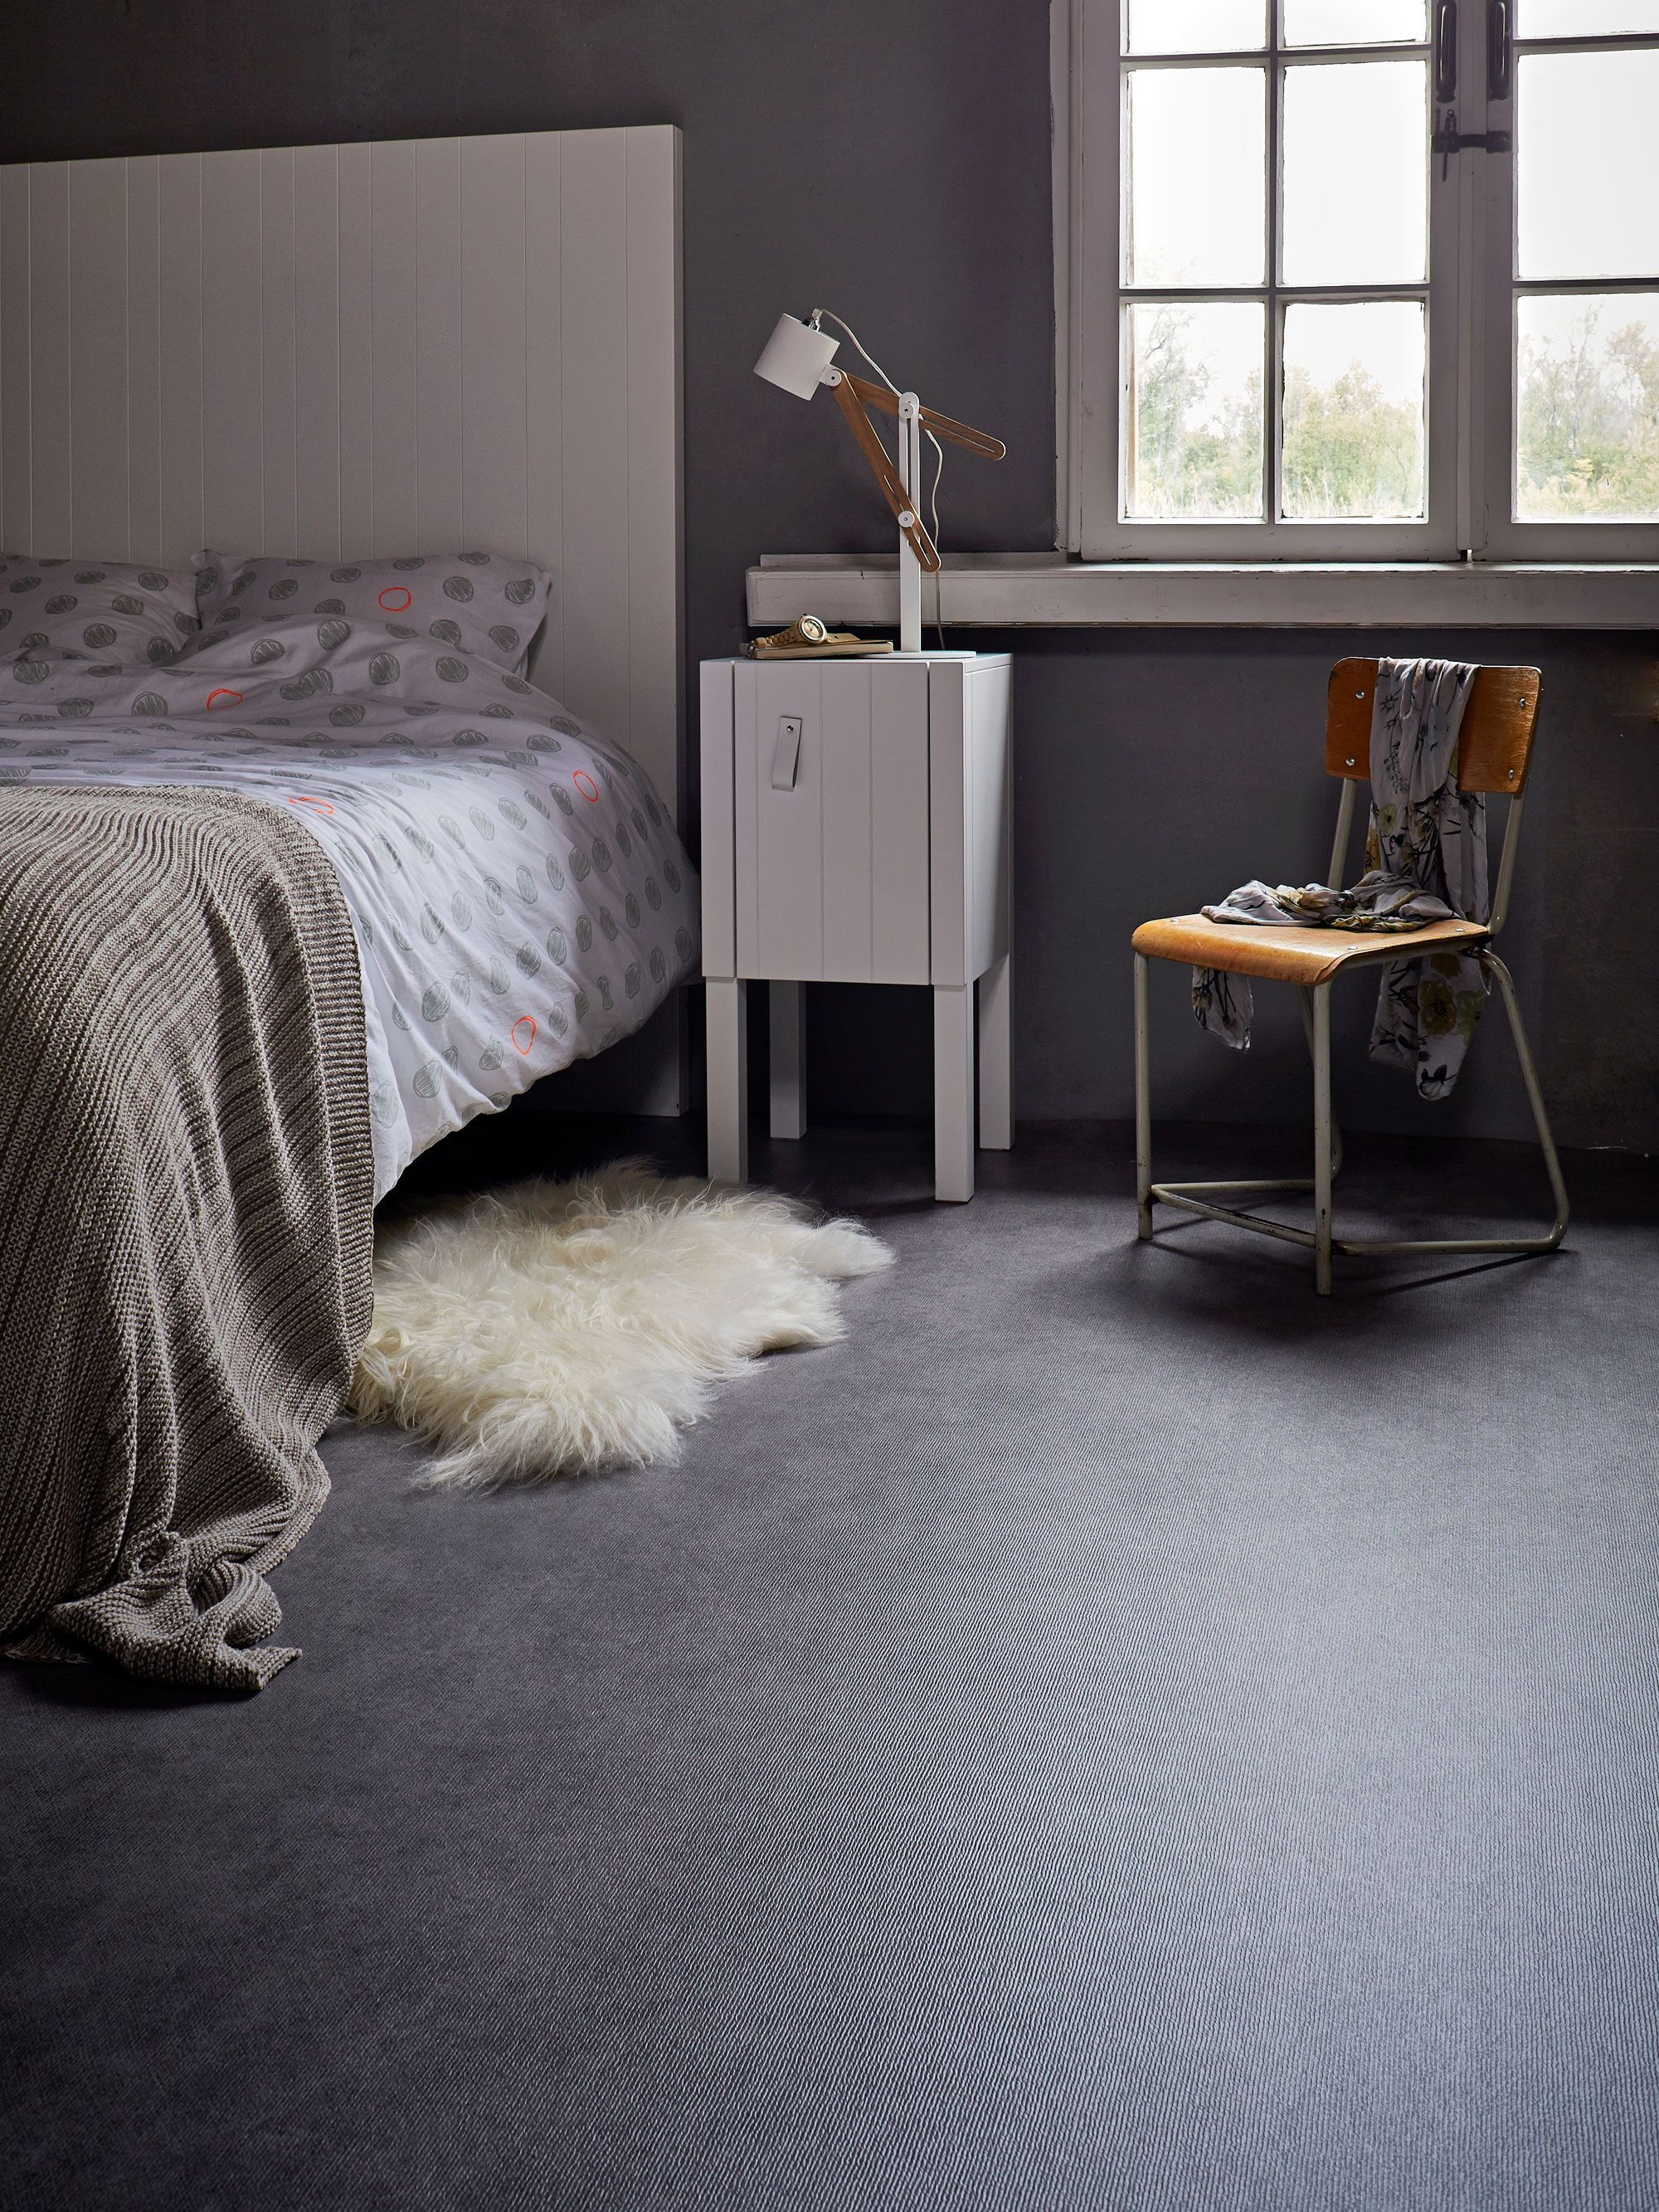 Dark Marmoleum Floor In The Bedroom With A White Bed And Nightstand On Ground There Is Sheepskin Carpet Photographer Alexander Van Berge